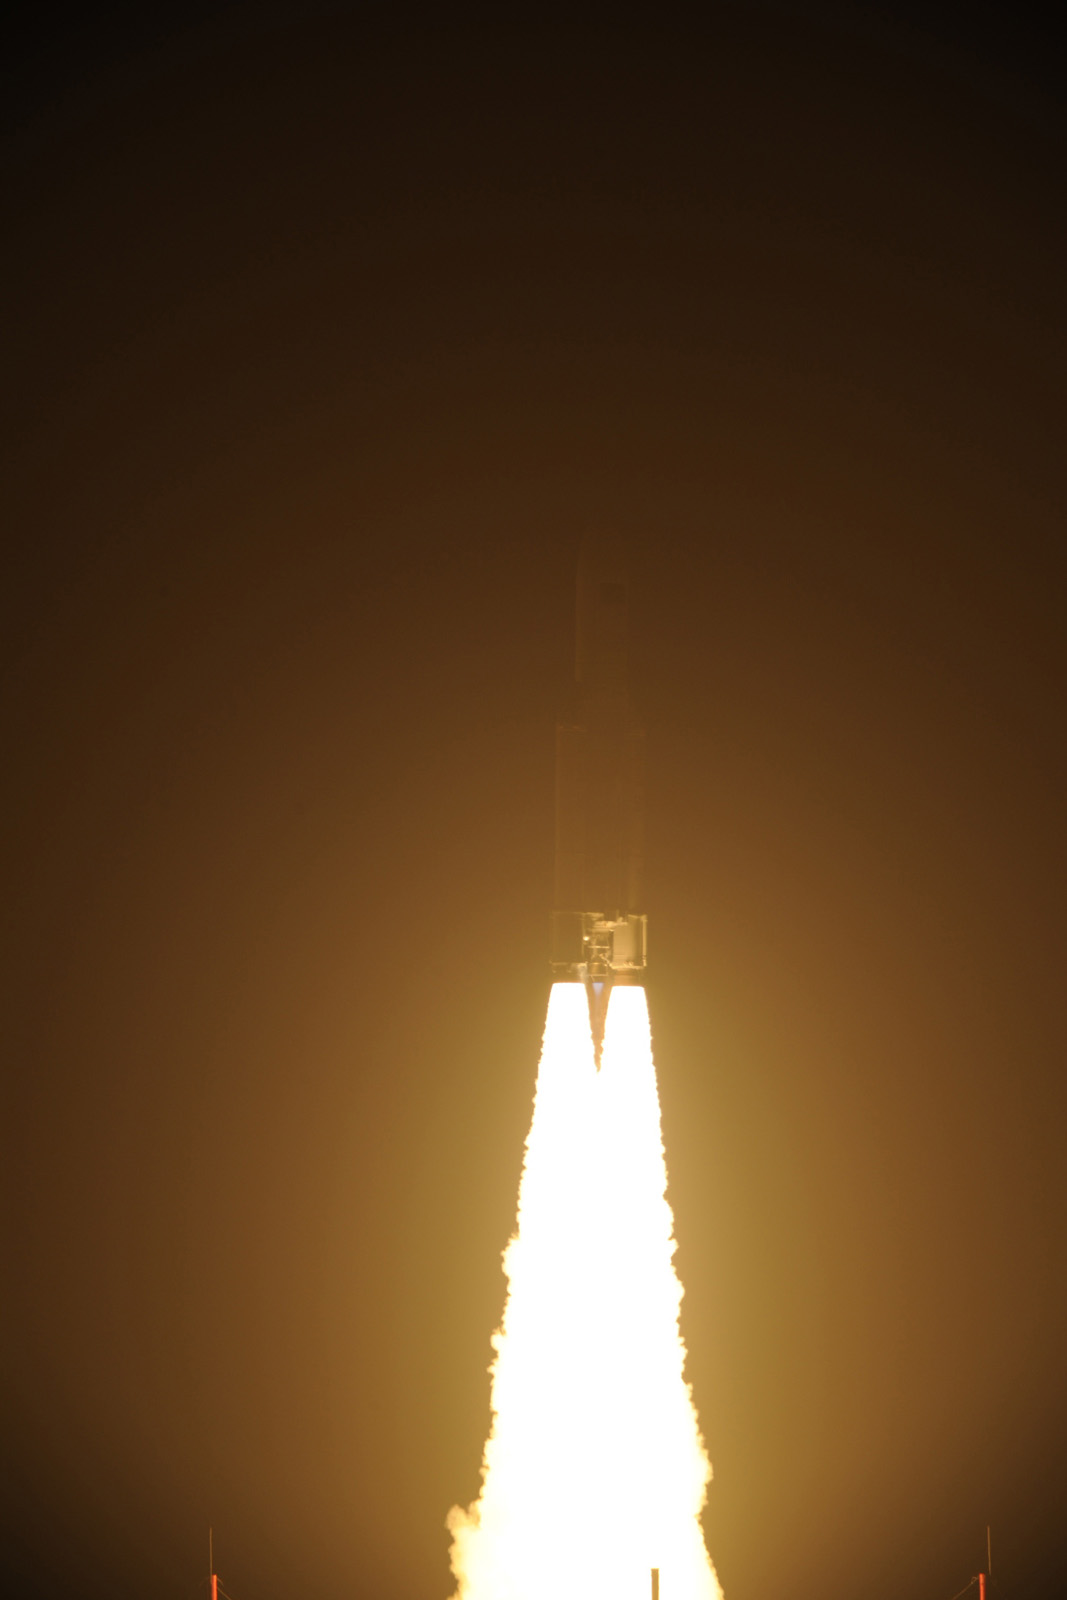 ATV-3 Cargo Ship Lights Up Sky in March 23, 2012 Launch